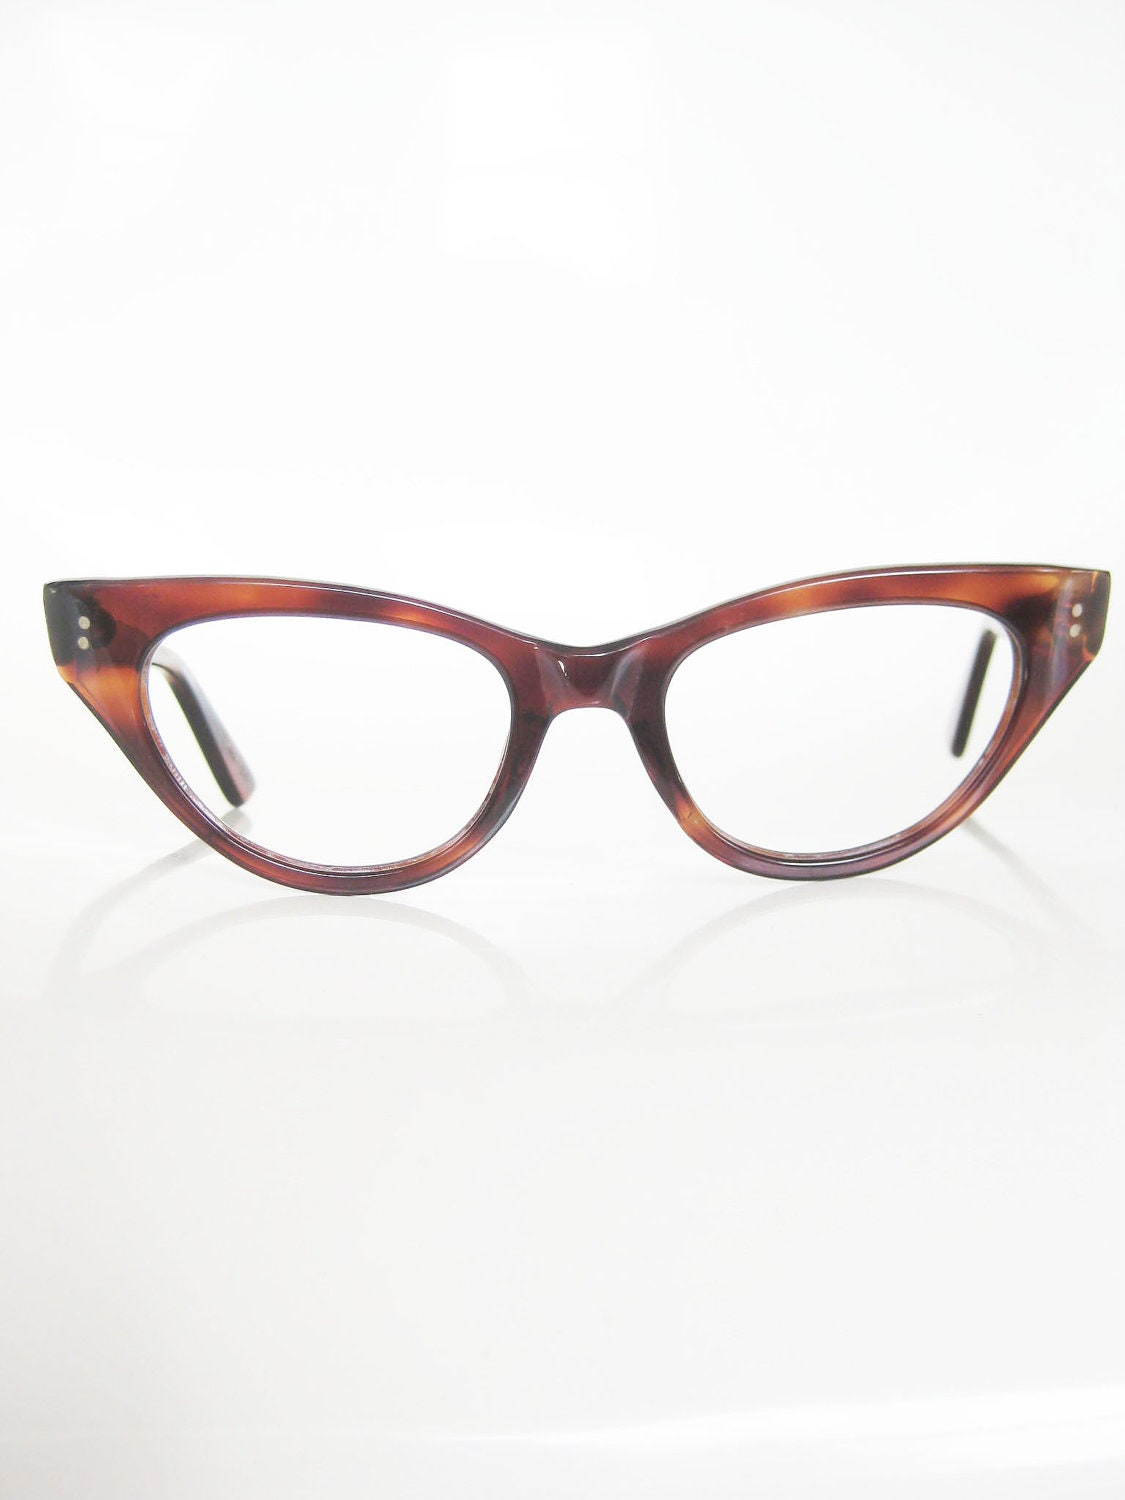 Frame Of Glasses In French : Vintage Eyeglasses Cat Eye 60s French Frames 1960s Glasses